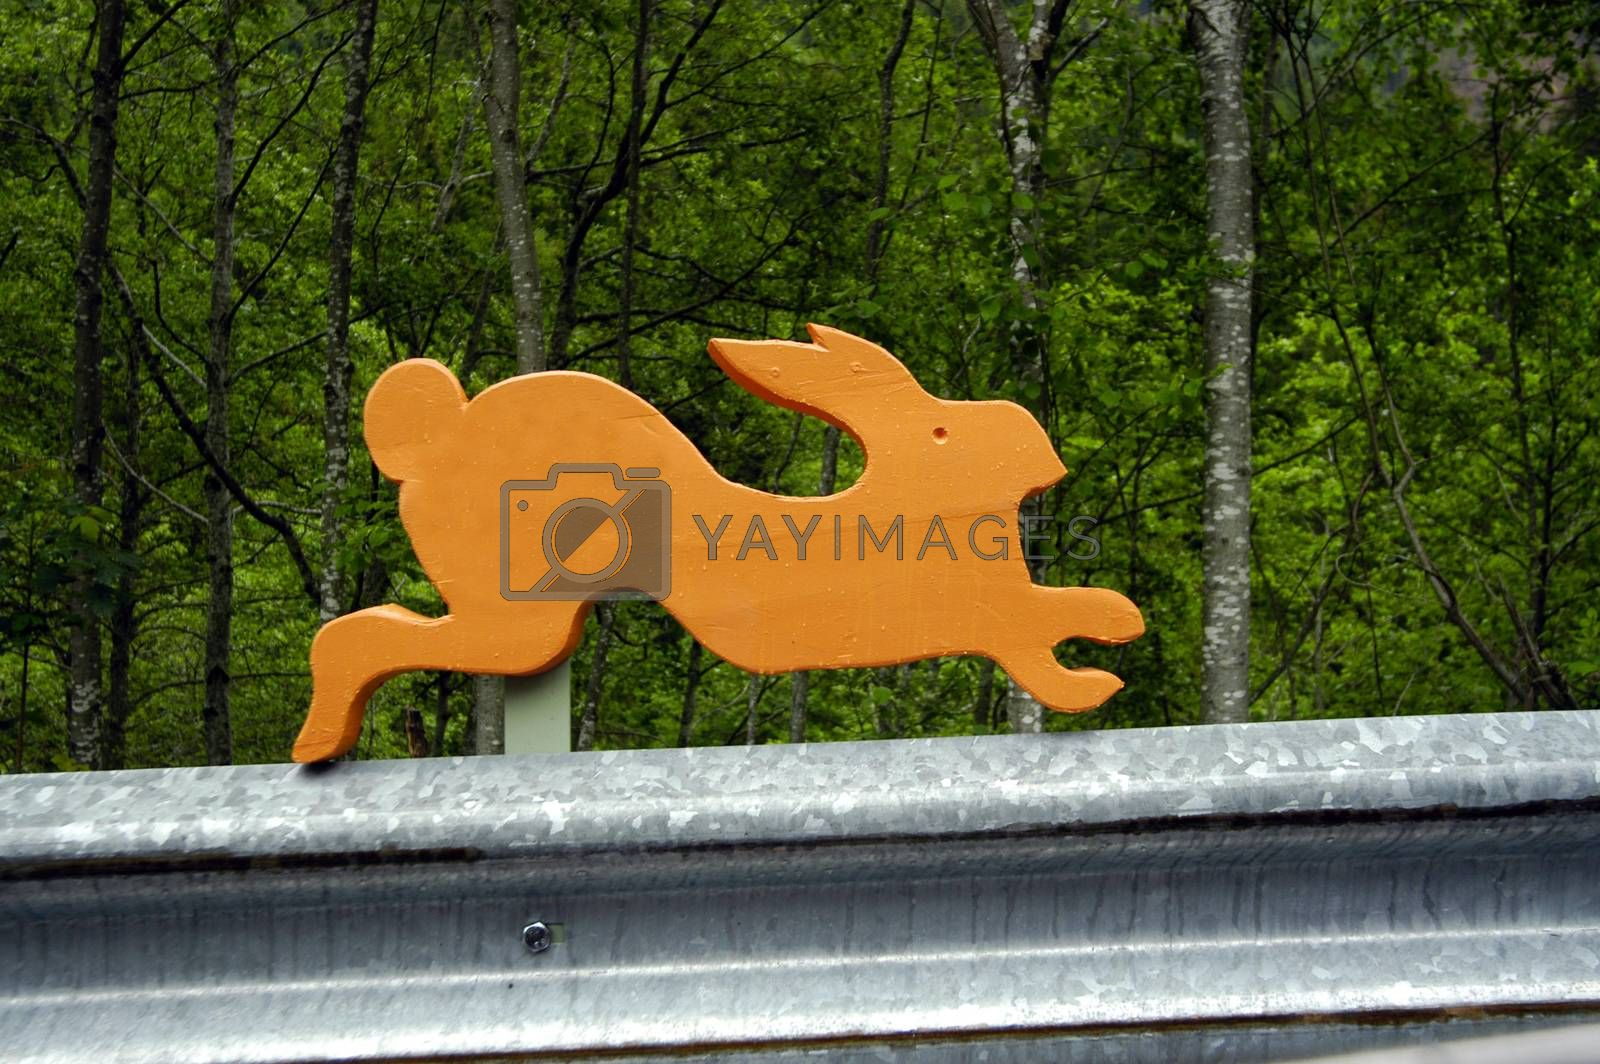 symbol of a wooden rabbit on a guard rail on the street